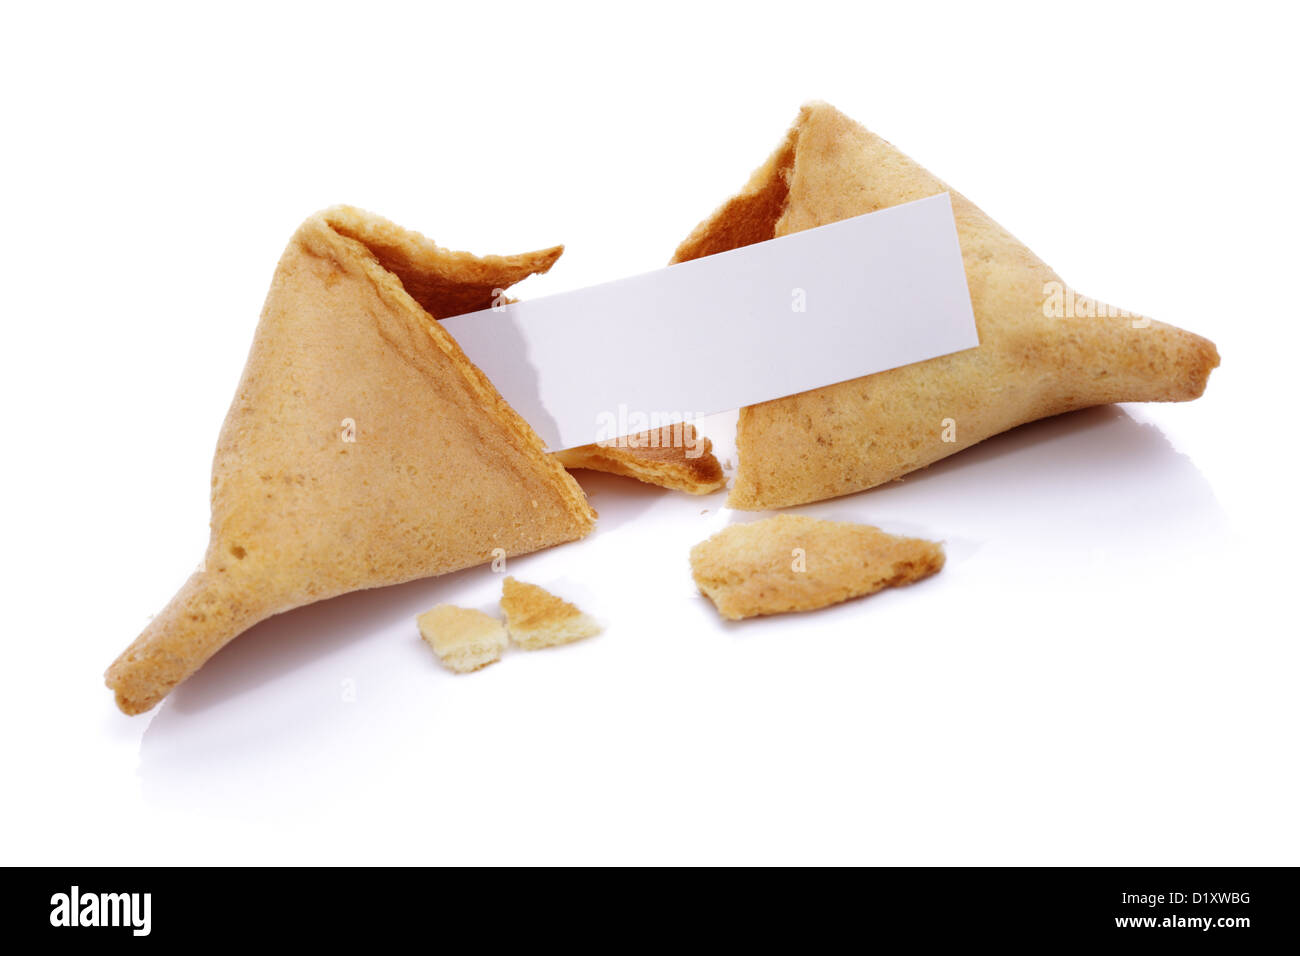 Fortune cookie - Stock Image